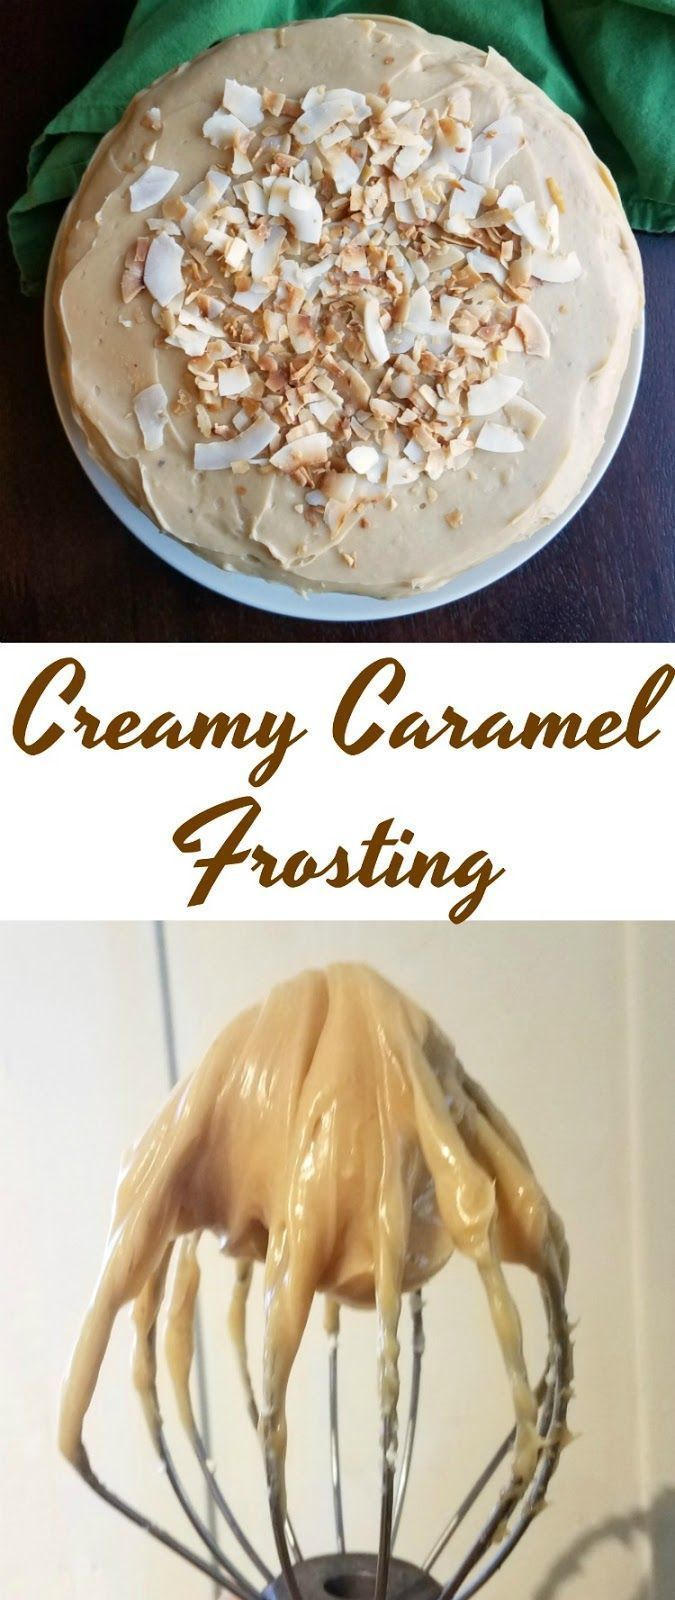 This frosting comes together really easily and starts with a can of sweetened condensed milk to make it extra special. It is a great way to make a caramel frosting for your favorite cakes!